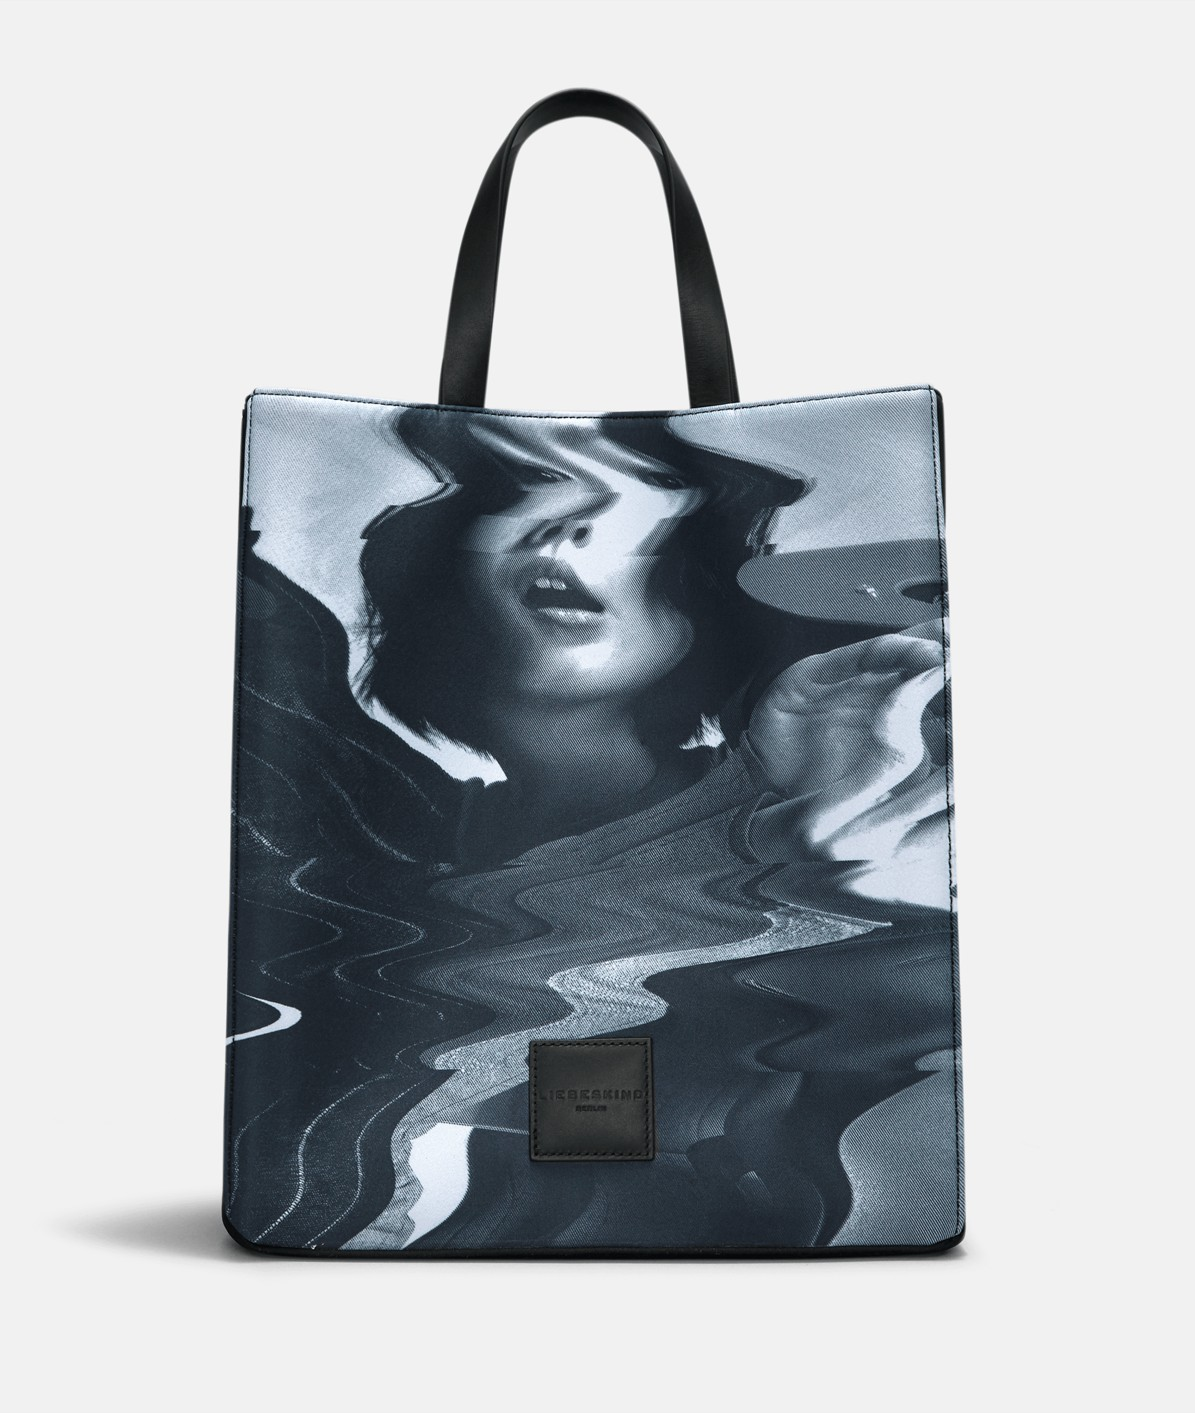 Neoprene tote bag with a monochrome print from liebeskind